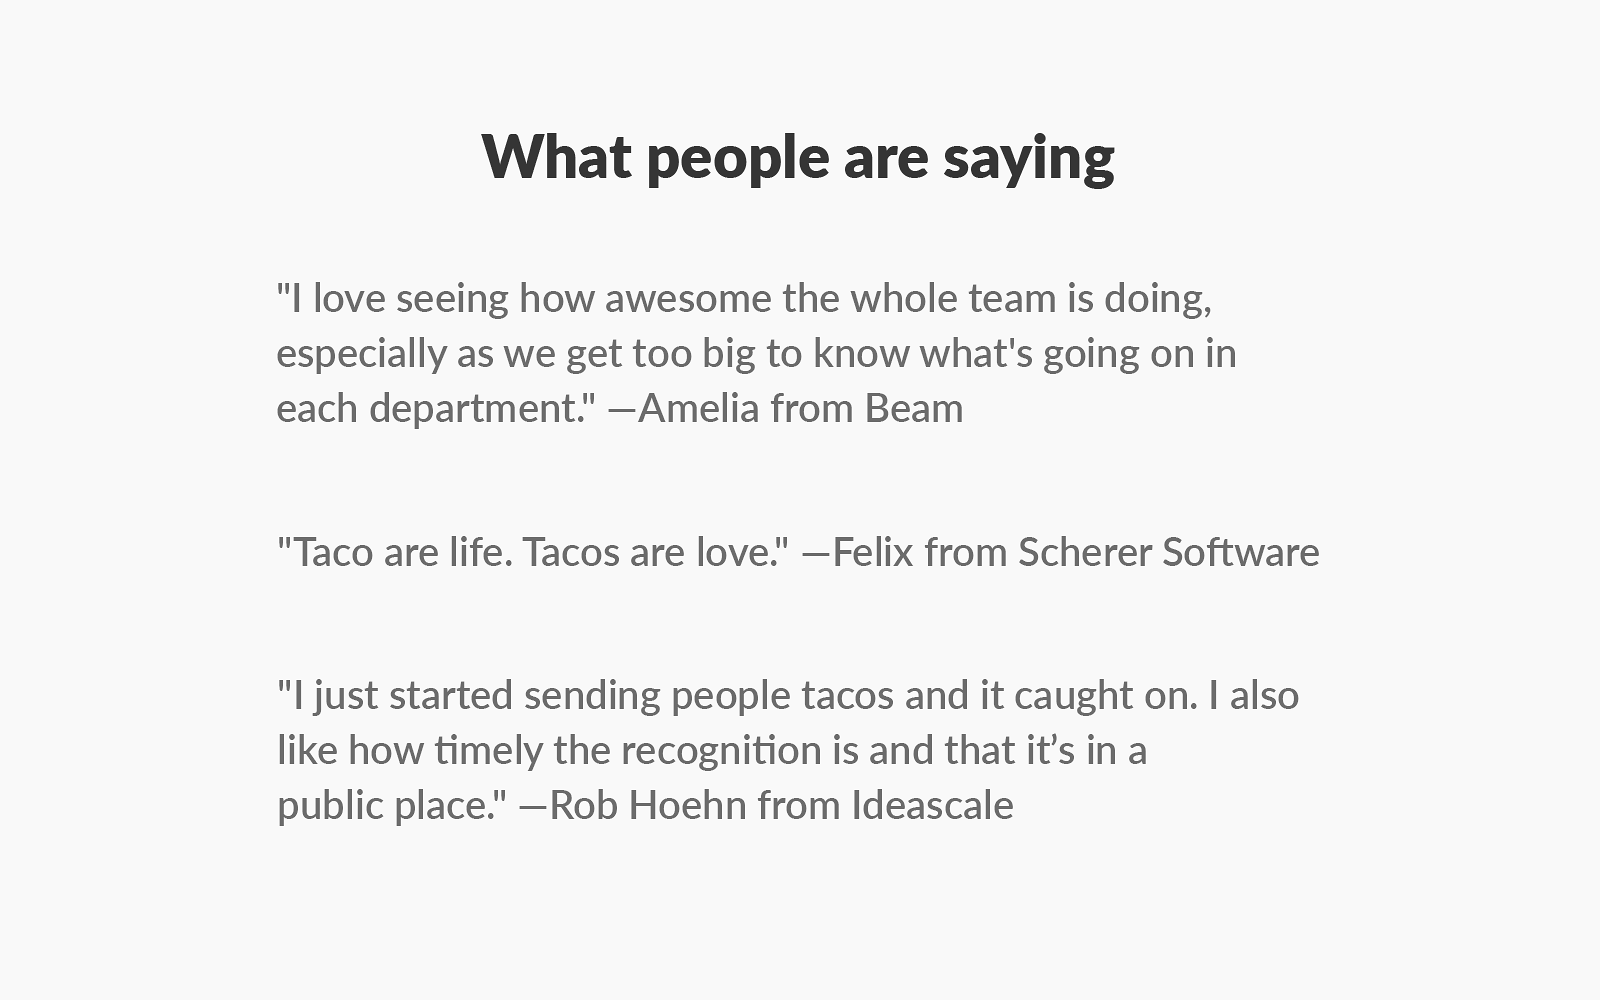 heytaco slack slack conducts a brief review of apps in our app directory and does not endorse or certify these apps